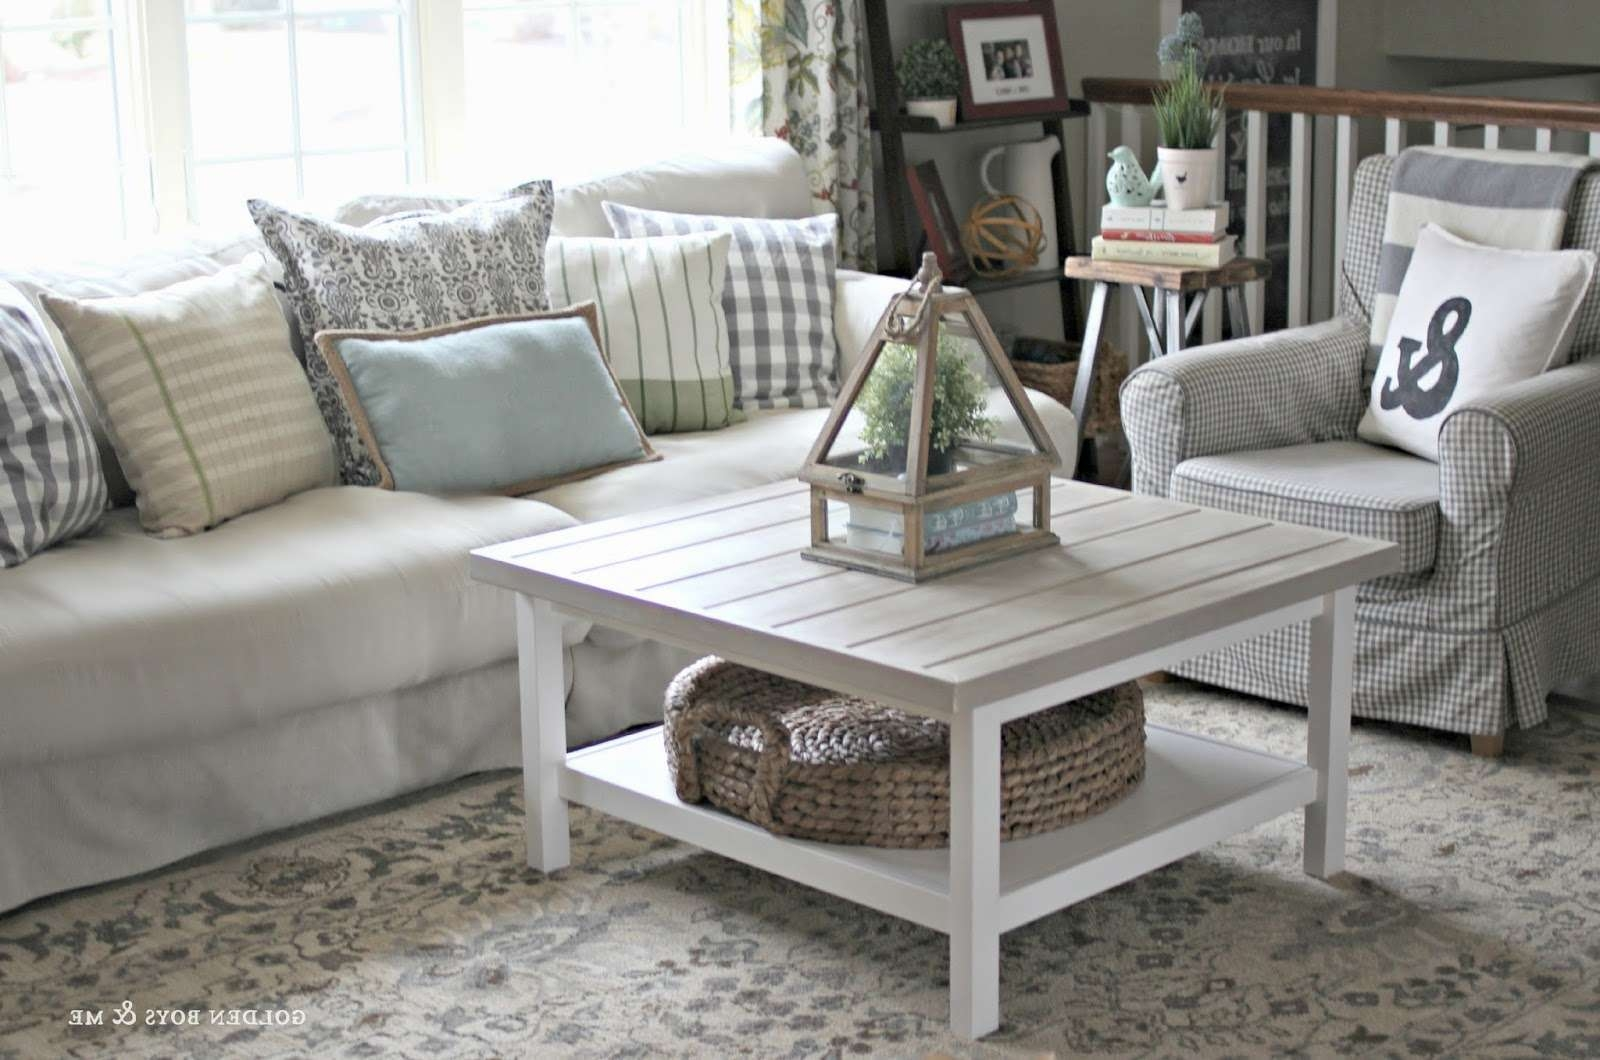 Most Recently Released Coffee Tables With Baskets Underneath With Regard To Coffee Table : Under Coffee Table Storage Baskets For Tableunder (View 8 of 20)